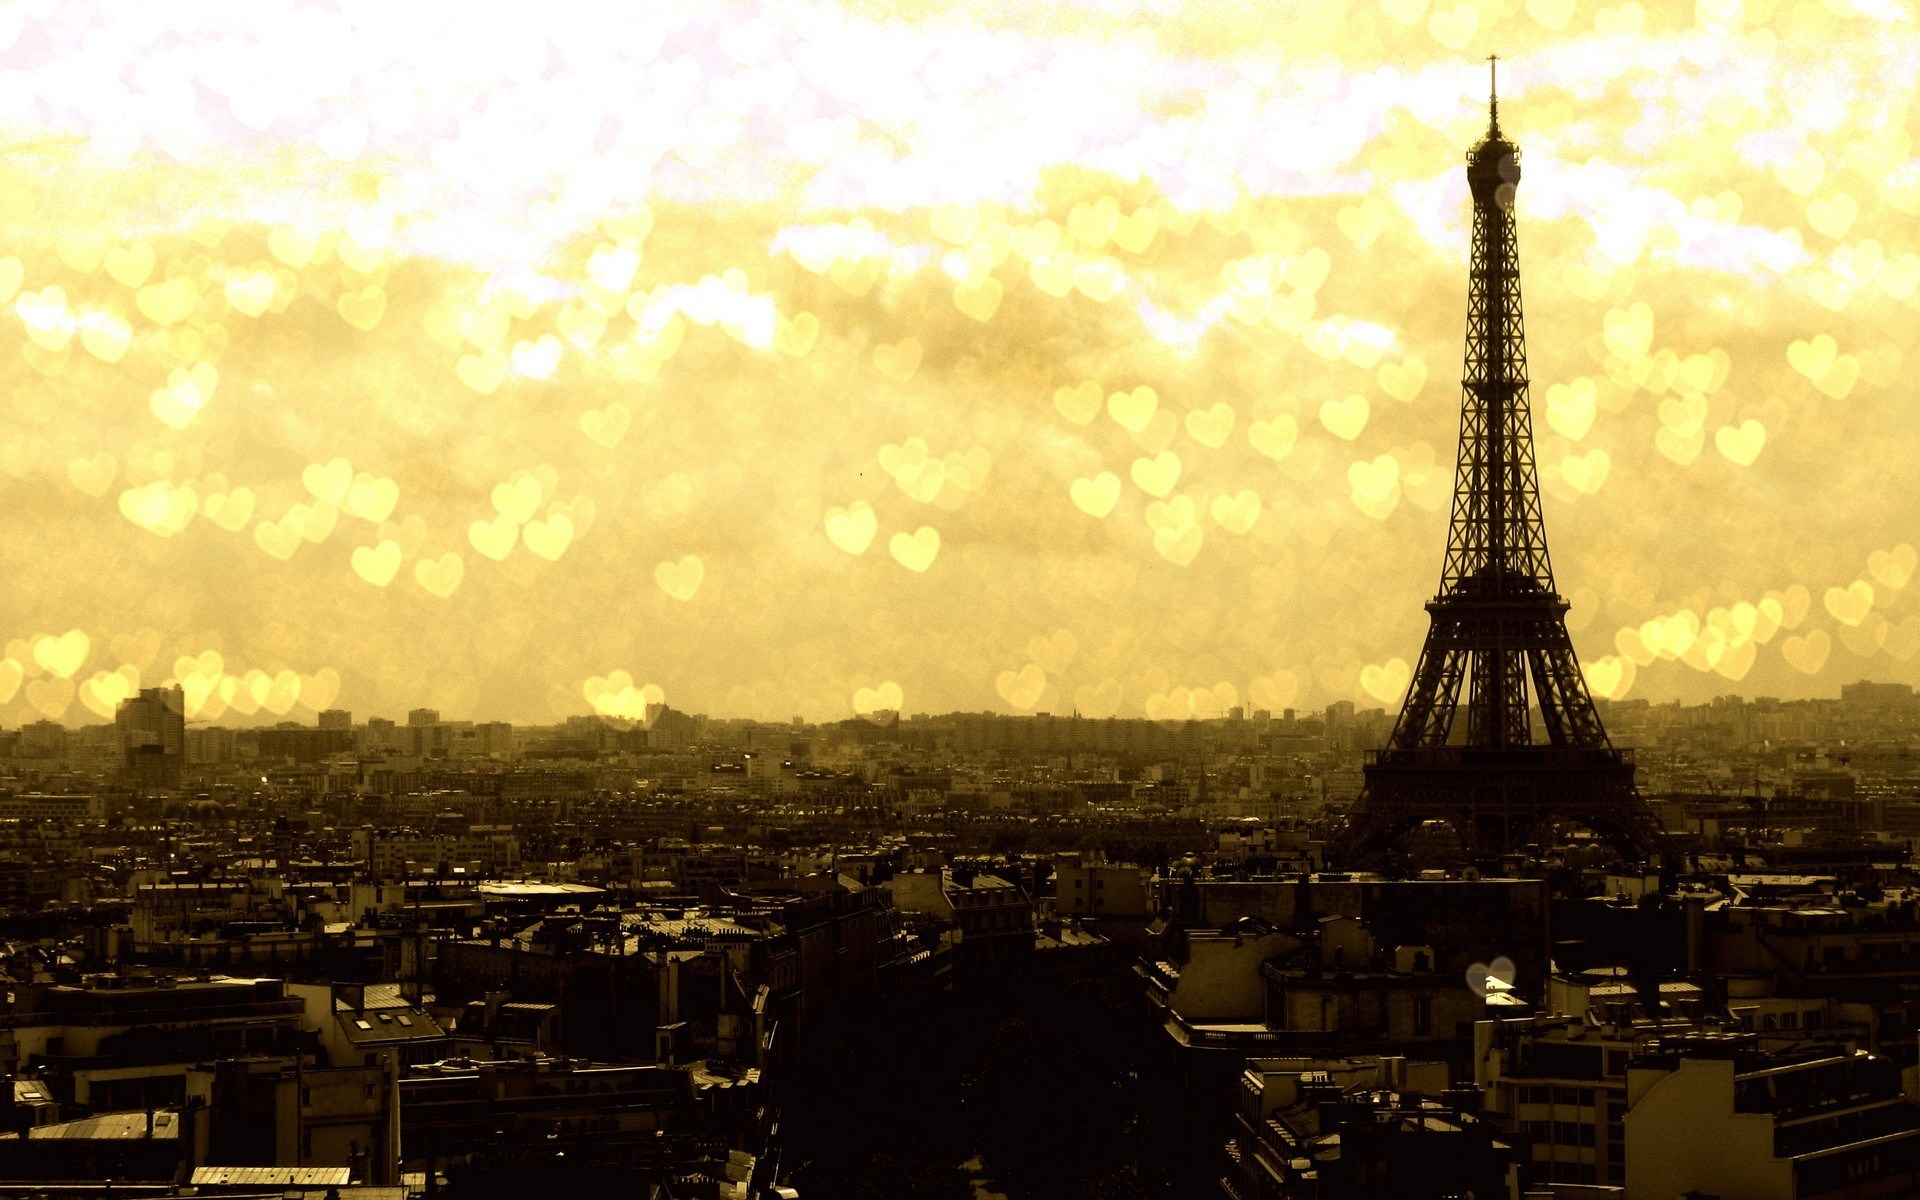 Eiffel-Tower-Paris-Hearts-Lights-Love-Photo-HD-wallpaper-wp3605325